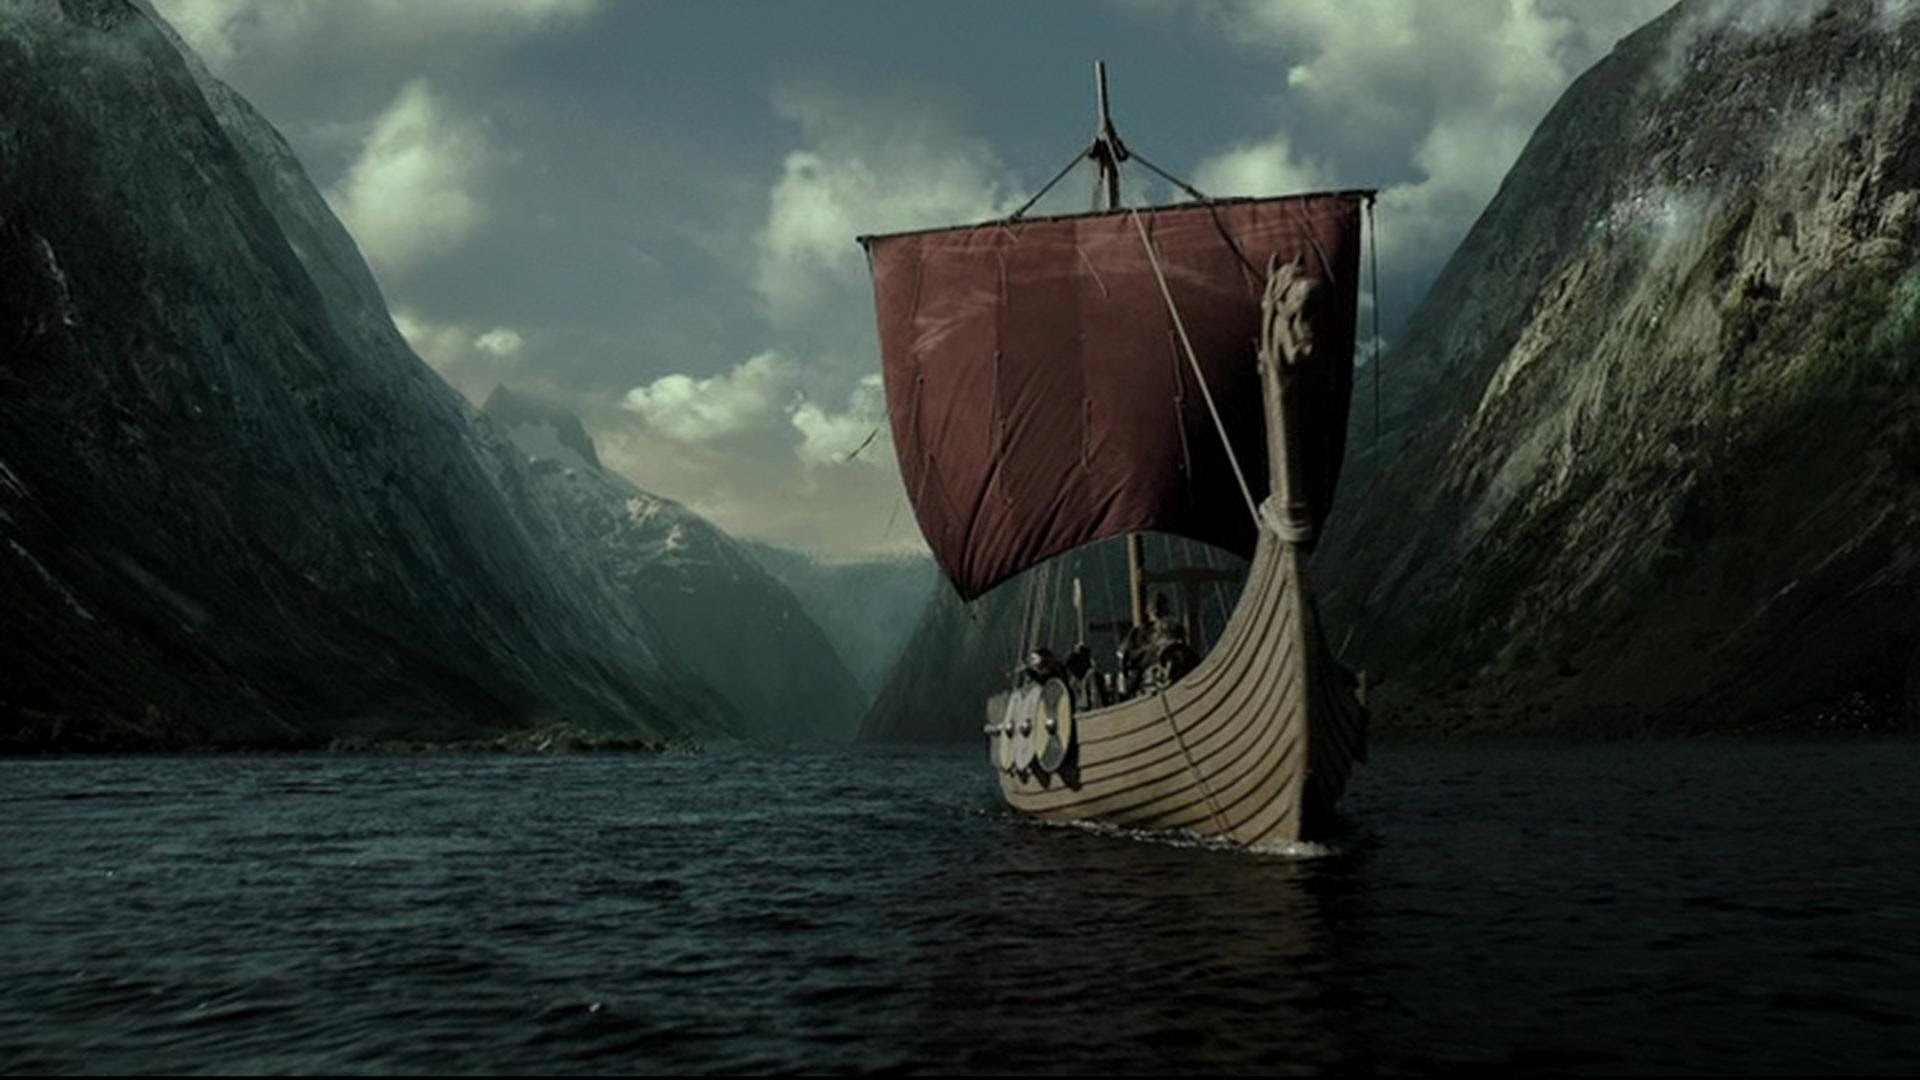 347422-gorgerous-vikings-wallpaper-1920x1080-for-iphone-7.jpg